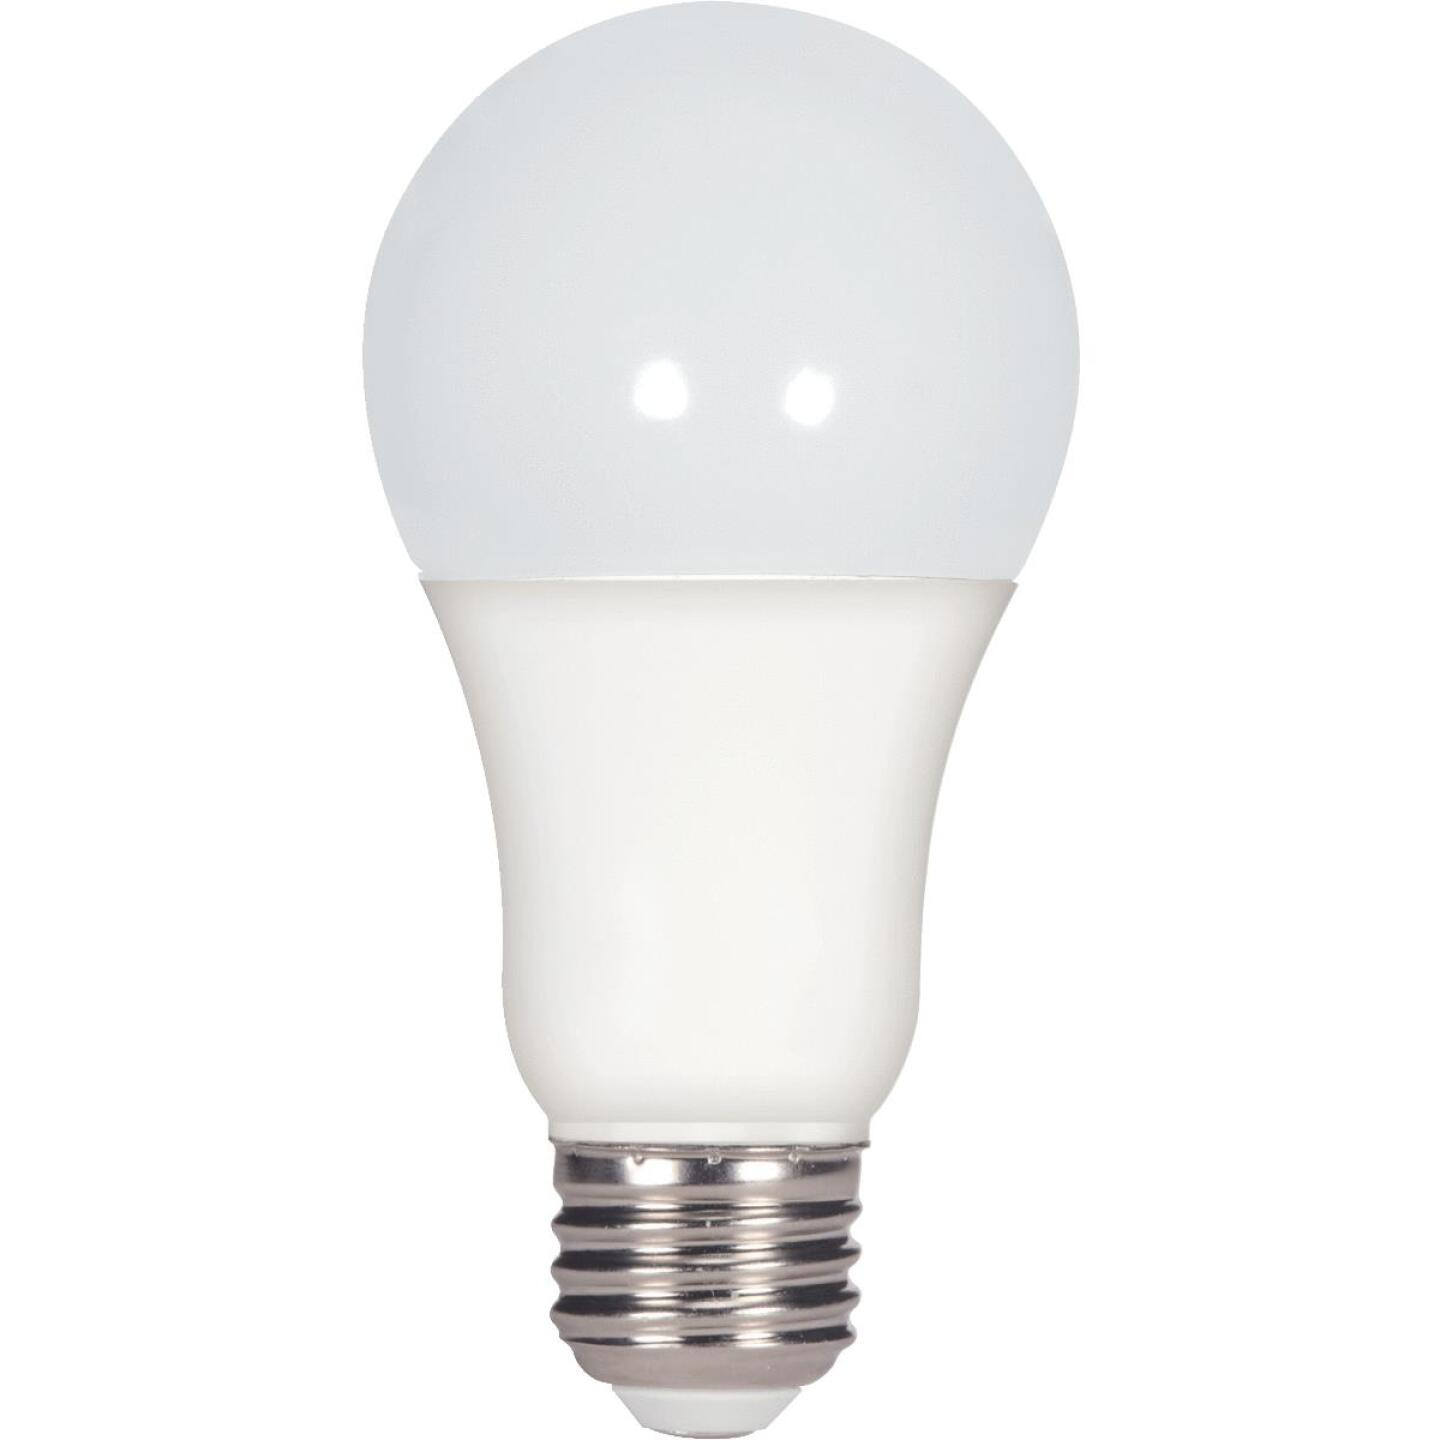 Satco 100W Equivalent Natural Light A19 Medium Dimmable LED Light Bulb Image 1